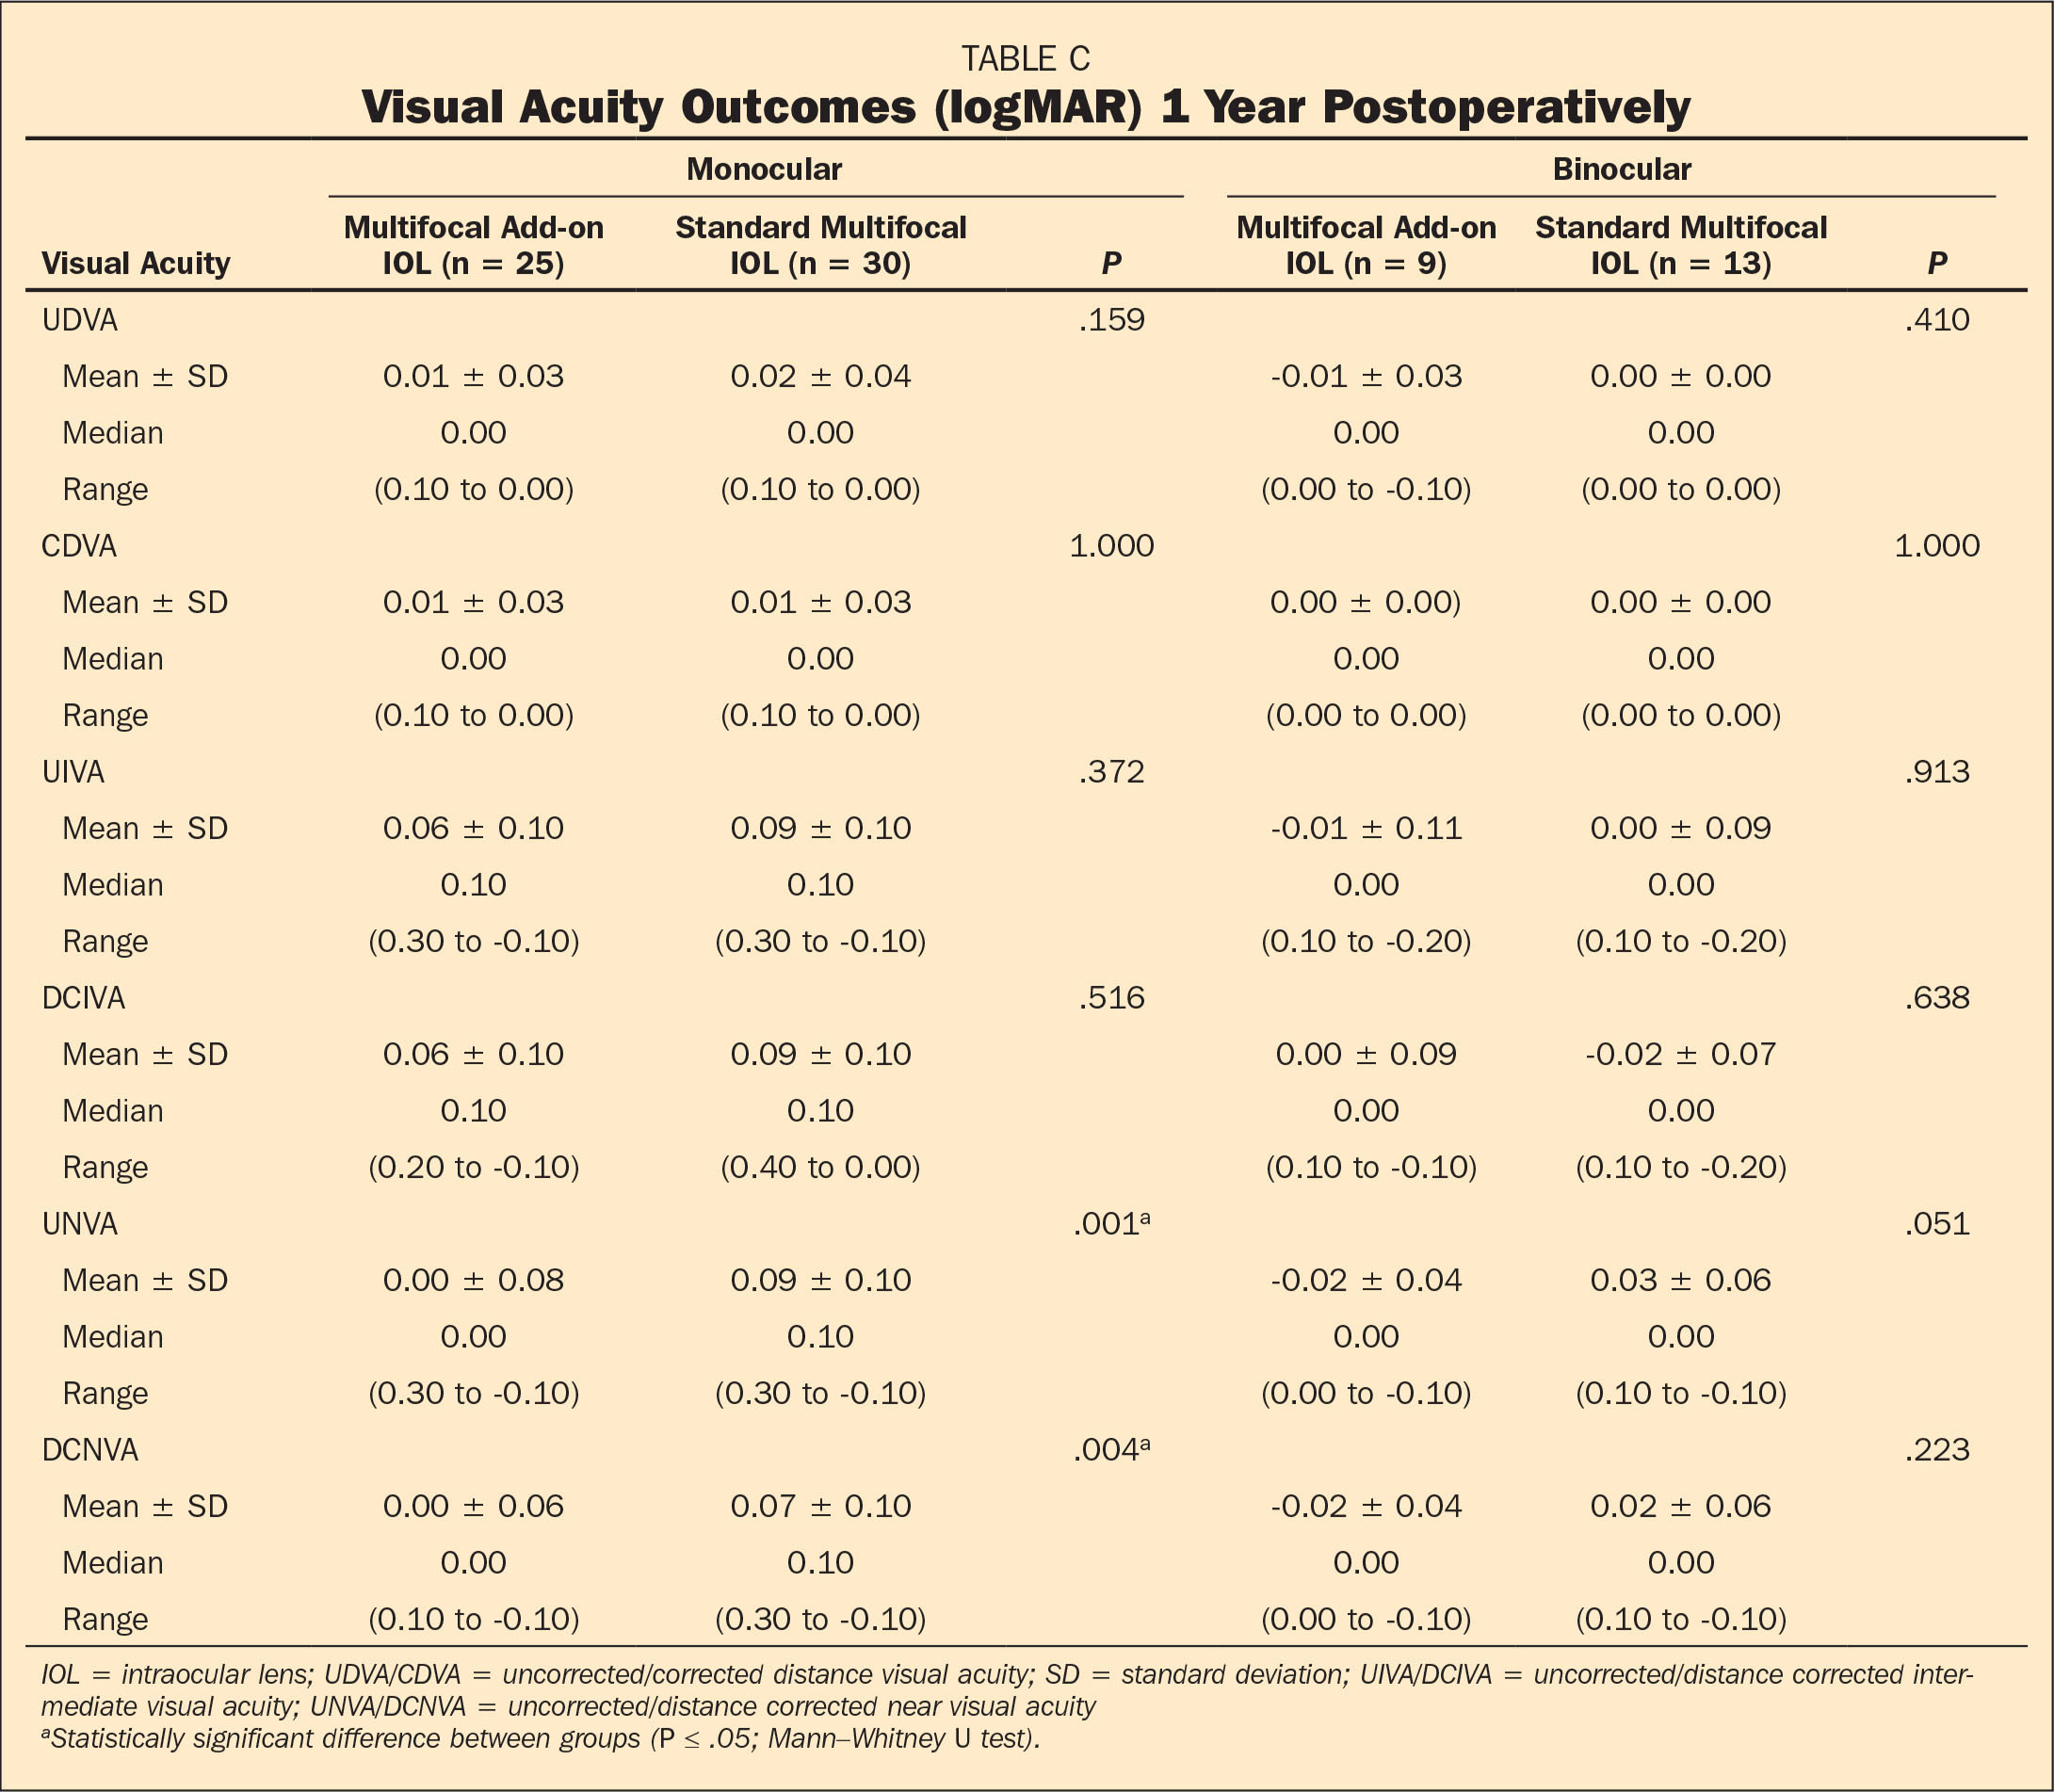 Visual Acuity Outcomes (logMAR) 1 Year Postoperatively